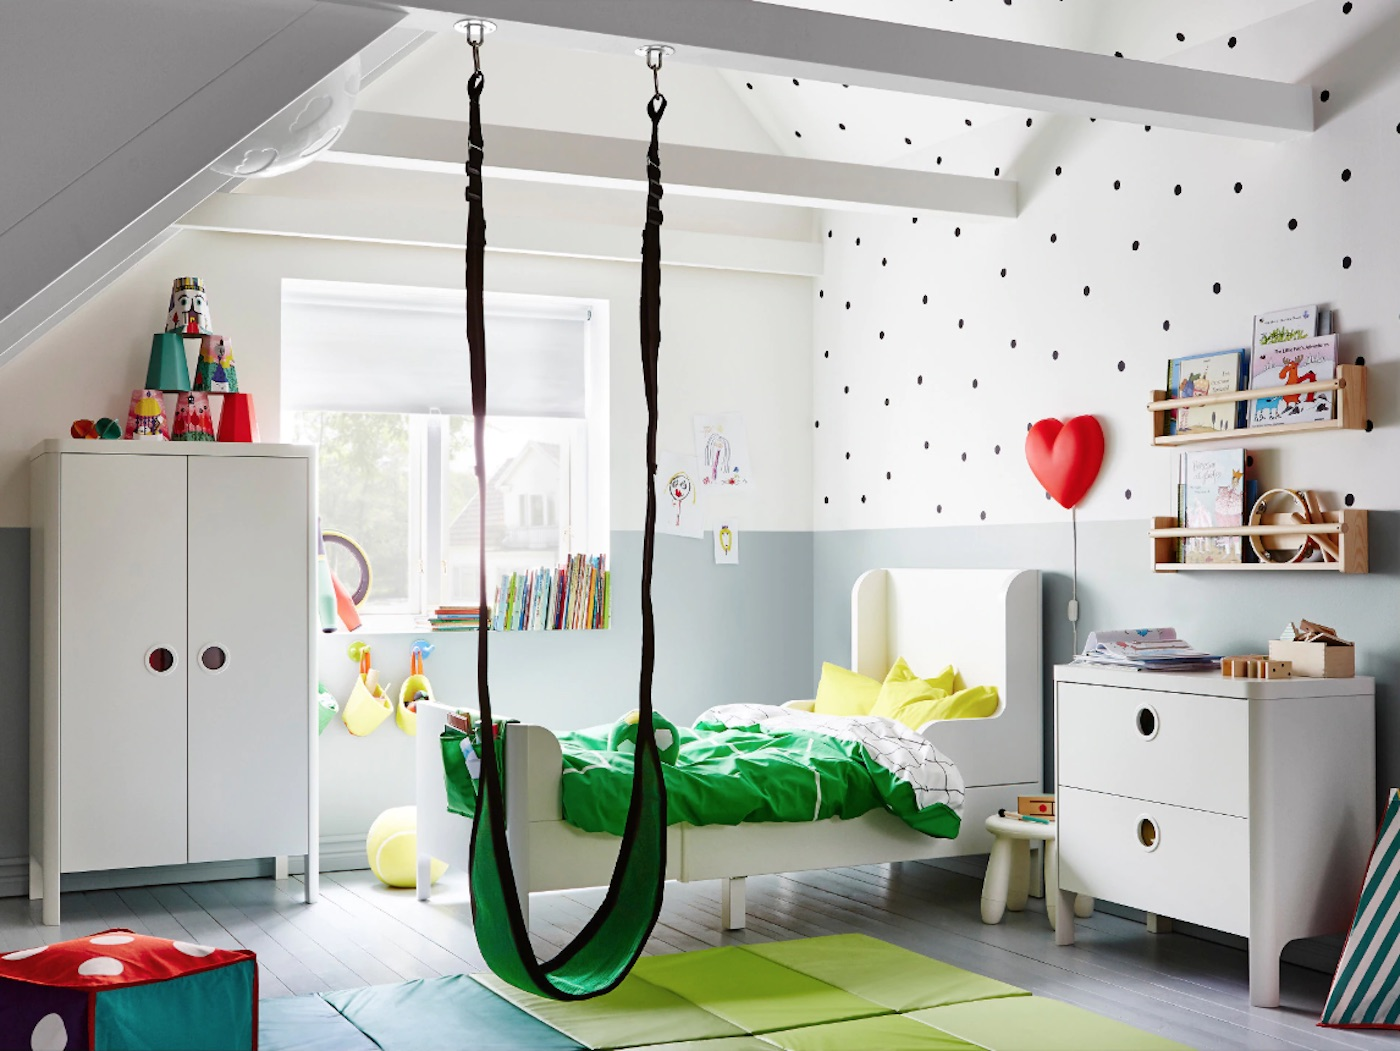 18 Fun Kids Room Ideas For Inspiration Simplemost